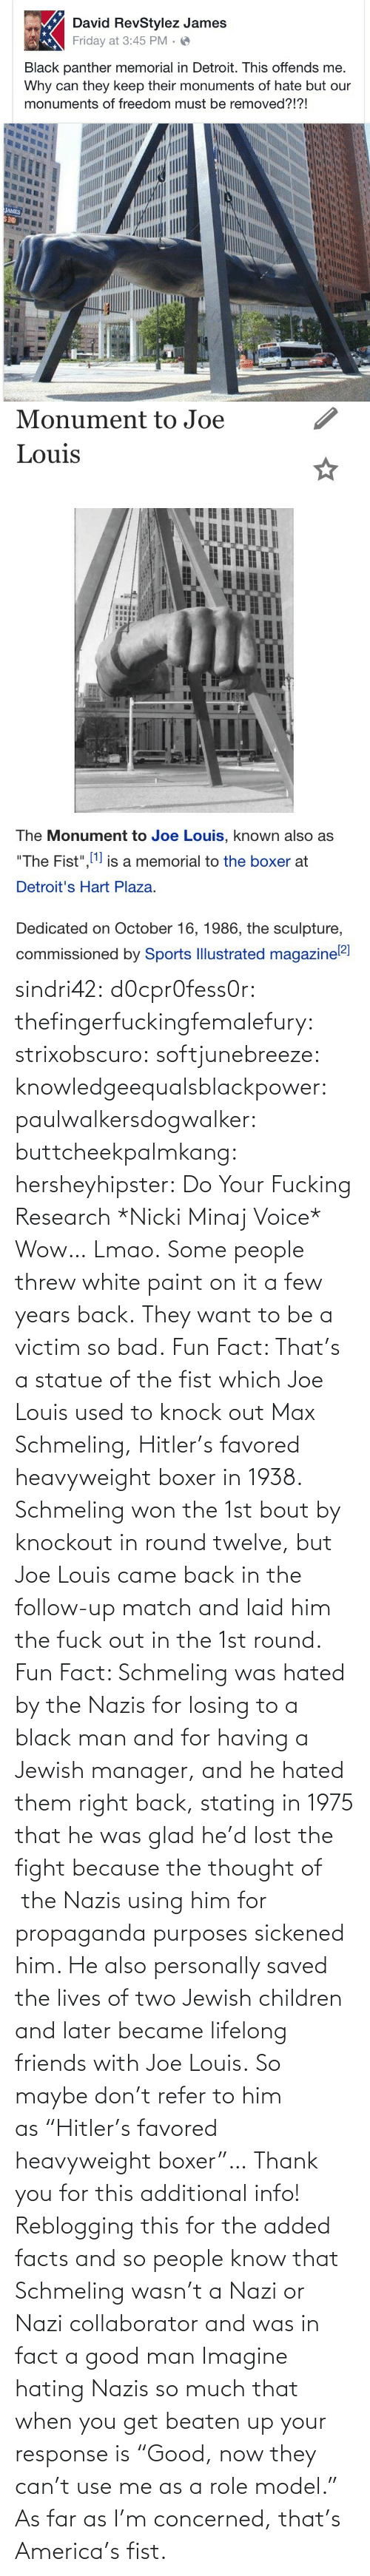 "fist: sindri42:  d0cpr0fess0r:  thefingerfuckingfemalefury:  strixobscuro:  softjunebreeze:  knowledgeequalsblackpower:  paulwalkersdogwalker:   buttcheekpalmkang:   hersheyhipster:  Do Your Fucking Research *Nicki Minaj Voice*    Wow… Lmao.   Some people threw white paint on it a few years back.   They want to be a victim so bad.  Fun Fact: That's a statue of the fist which Joe Louis used to knock out Max Schmeling, Hitler's favored heavyweight boxer in 1938. Schmeling won the 1st bout by knockout in round twelve, but Joe Louis came back in the follow-up match and laid him the fuck out in the 1st round.  Fun Fact: Schmeling was hated by the Nazis for losing to a black man and for having a Jewish manager, and he hated them right back, stating in 1975 that he was glad he'd lost the fight because the thought of  the Nazis using him for propaganda purposes sickened him. He also personally saved the lives of two Jewish children and later became lifelong friends with Joe Louis. So maybe don't refer to him as ""Hitler's favored heavyweight boxer""…  Thank you for this additional info! Reblogging this for the added facts and so people know that Schmeling wasn't a Nazi or Nazi collaborator and was in fact a good man   Imagine hating Nazis so much that when you get beaten up your response is ""Good, now they can't use me as a role model.""  As far as I'm concerned, that's America's fist."